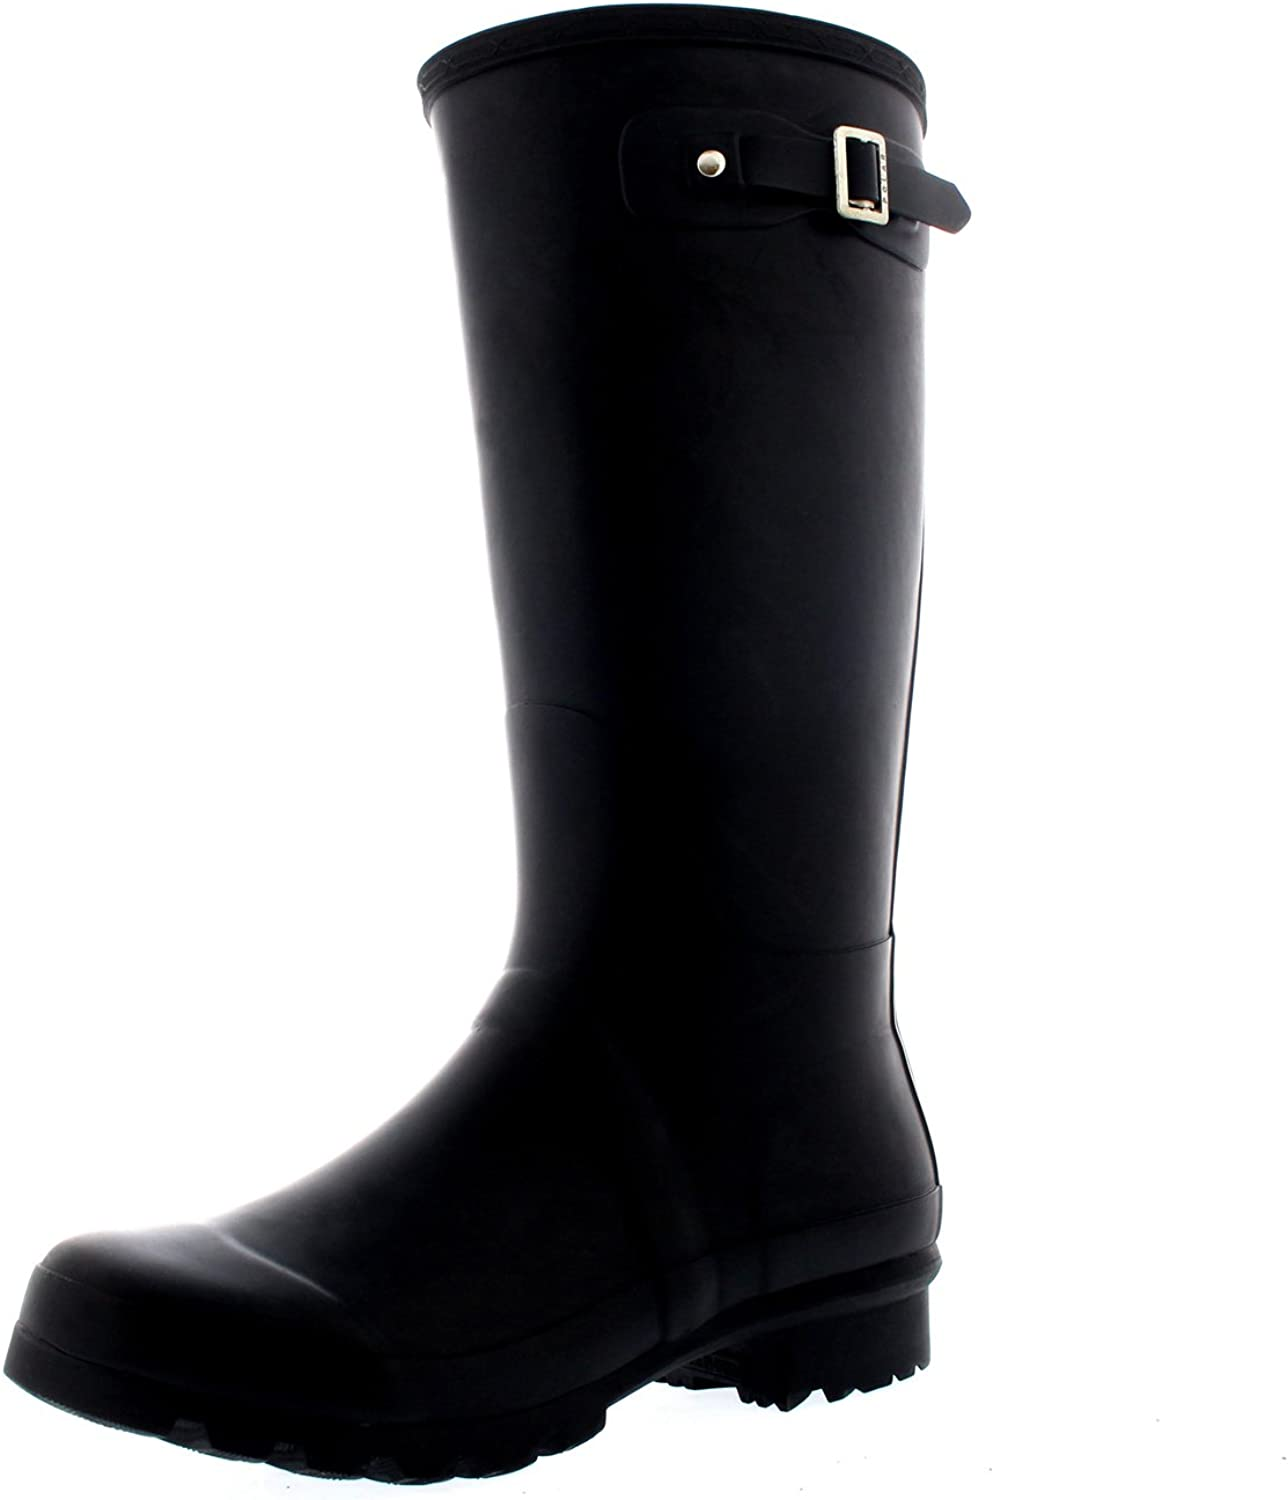 Polar Womens Tall Extra Wide Calf Wellington Galosh Muck Gardening Waterproof Rain Boots